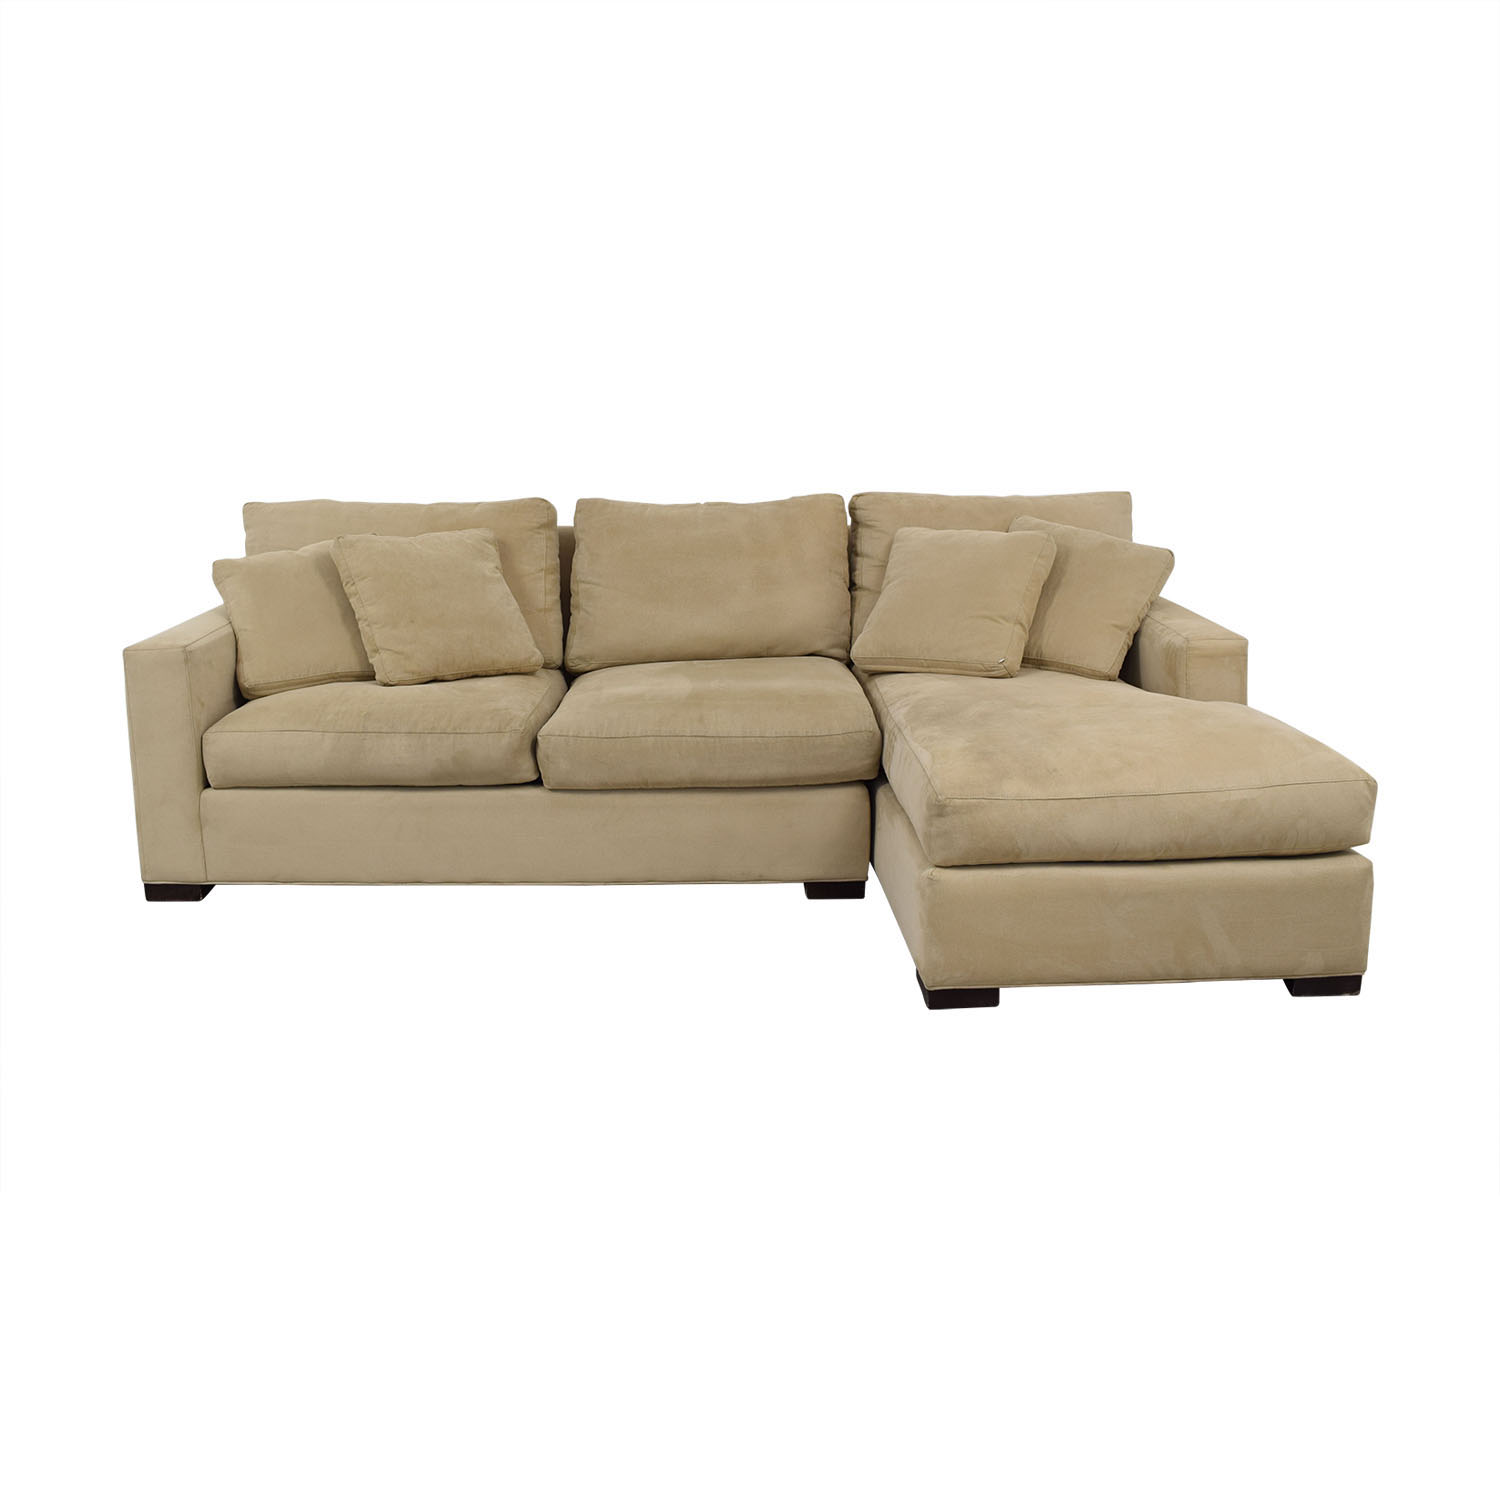 Crate & Barrel Crate & Barrel Beige Chaise Sectional on sale